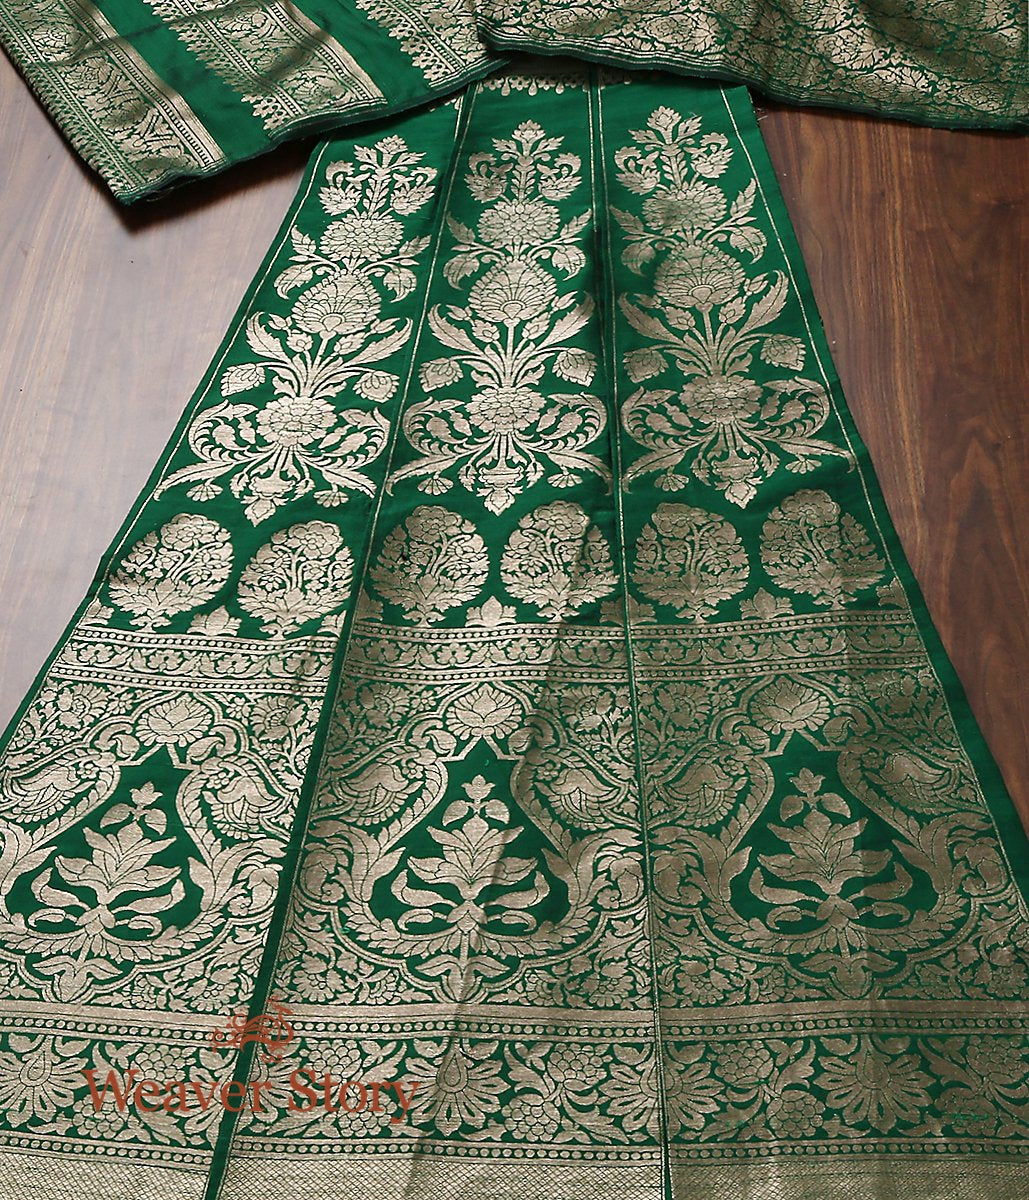 Handwoven Emerald Green Banarasi Lehenga woven in Tusser Silk